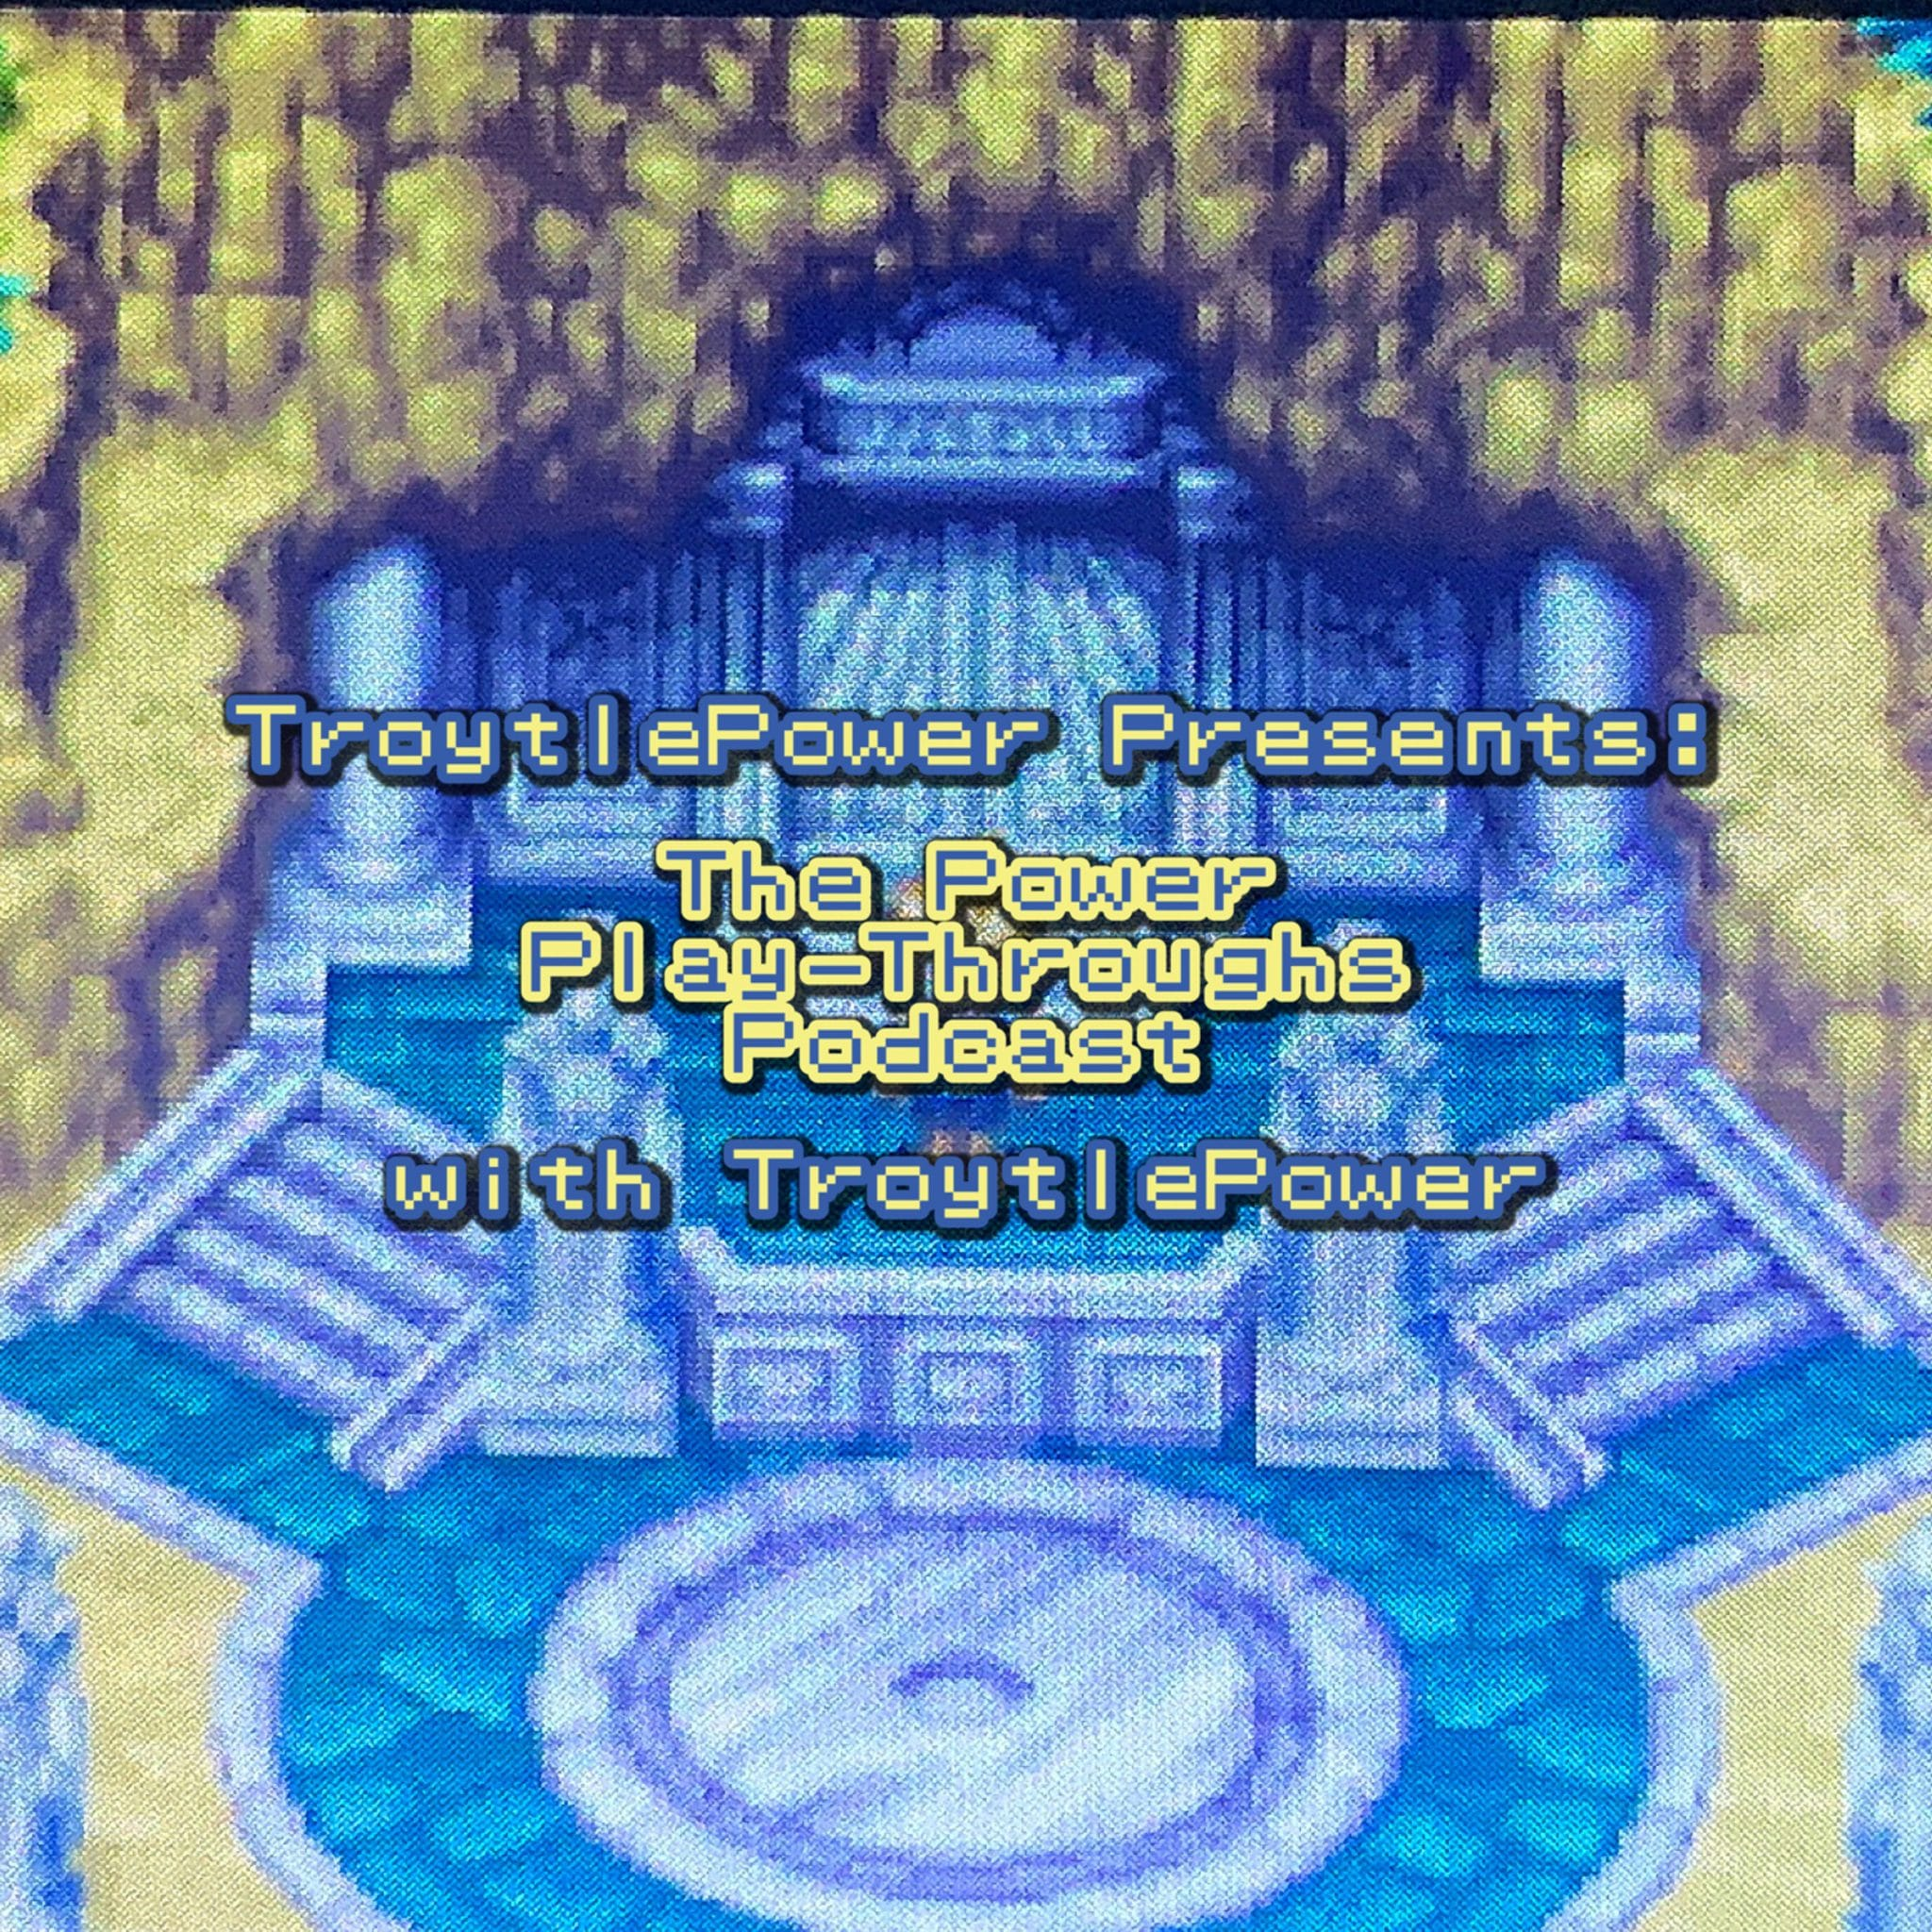 Golden Sun Gba Part 2 Troytlepower Presents The Power Play Throughs Podcast With Troytlepower